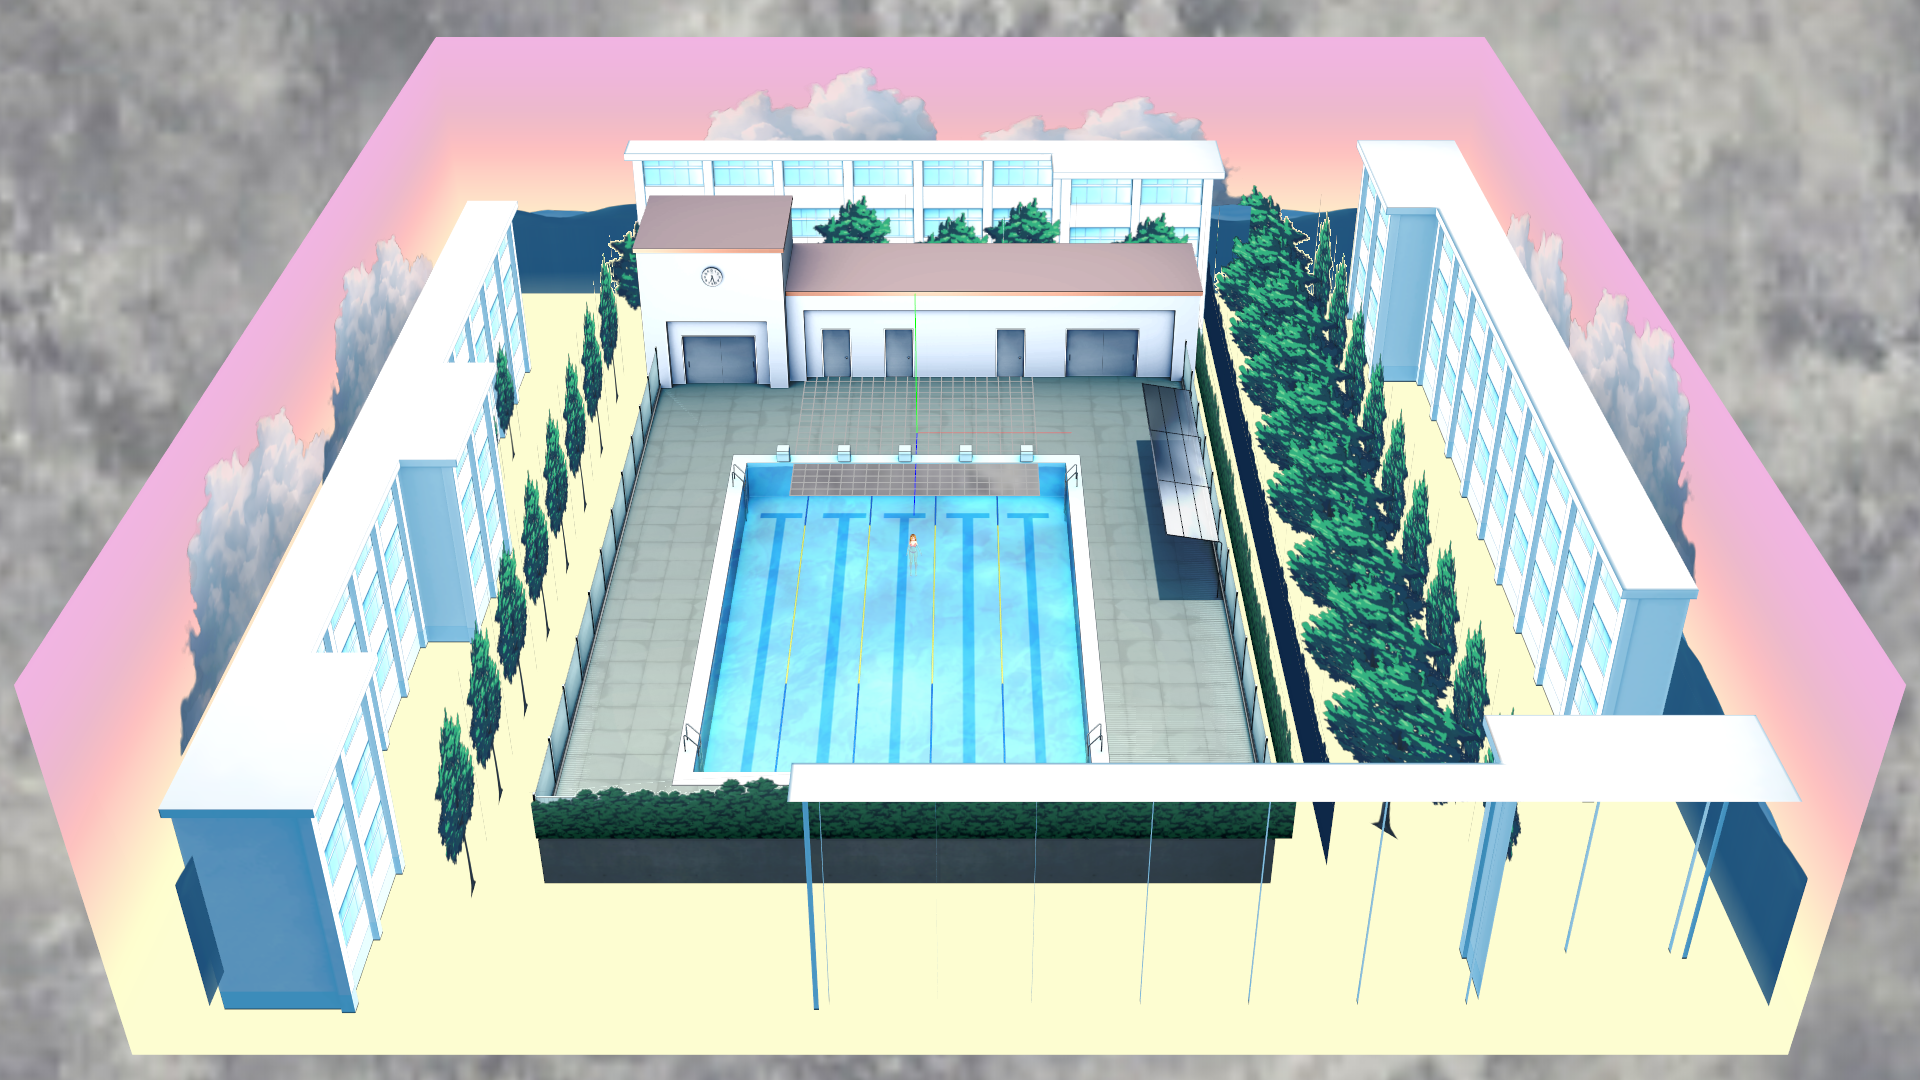 Swimming Pool Stage : Dl mmd school swimming pool stage by maddoktor on